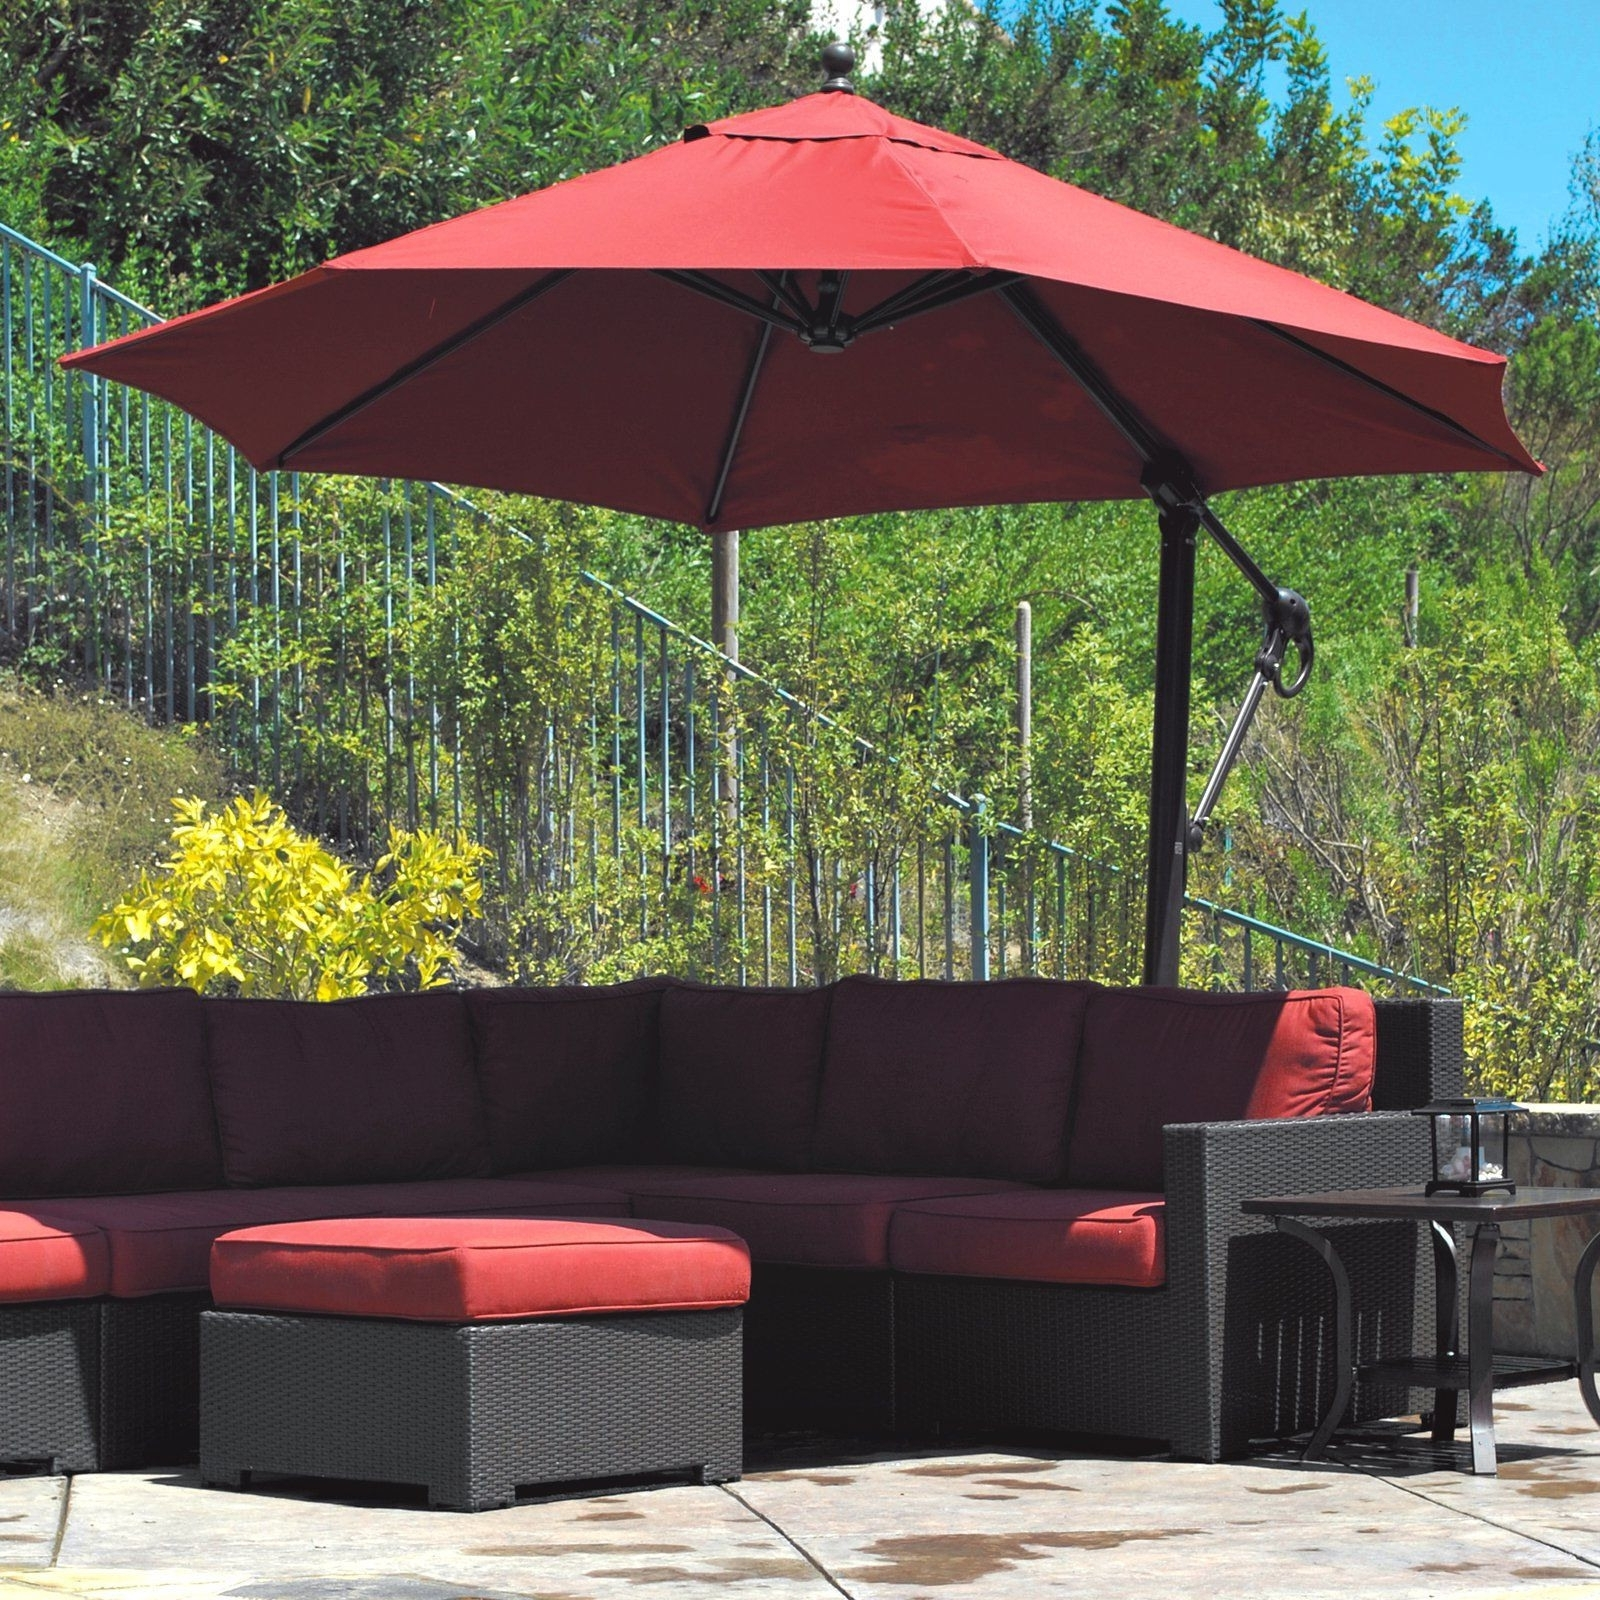 Lowes Patio Umbrellas Luxury Umbrella Sale Elegant Cool – Home With Recent Lowes Cantilever Patio Umbrellas (View 14 of 20)